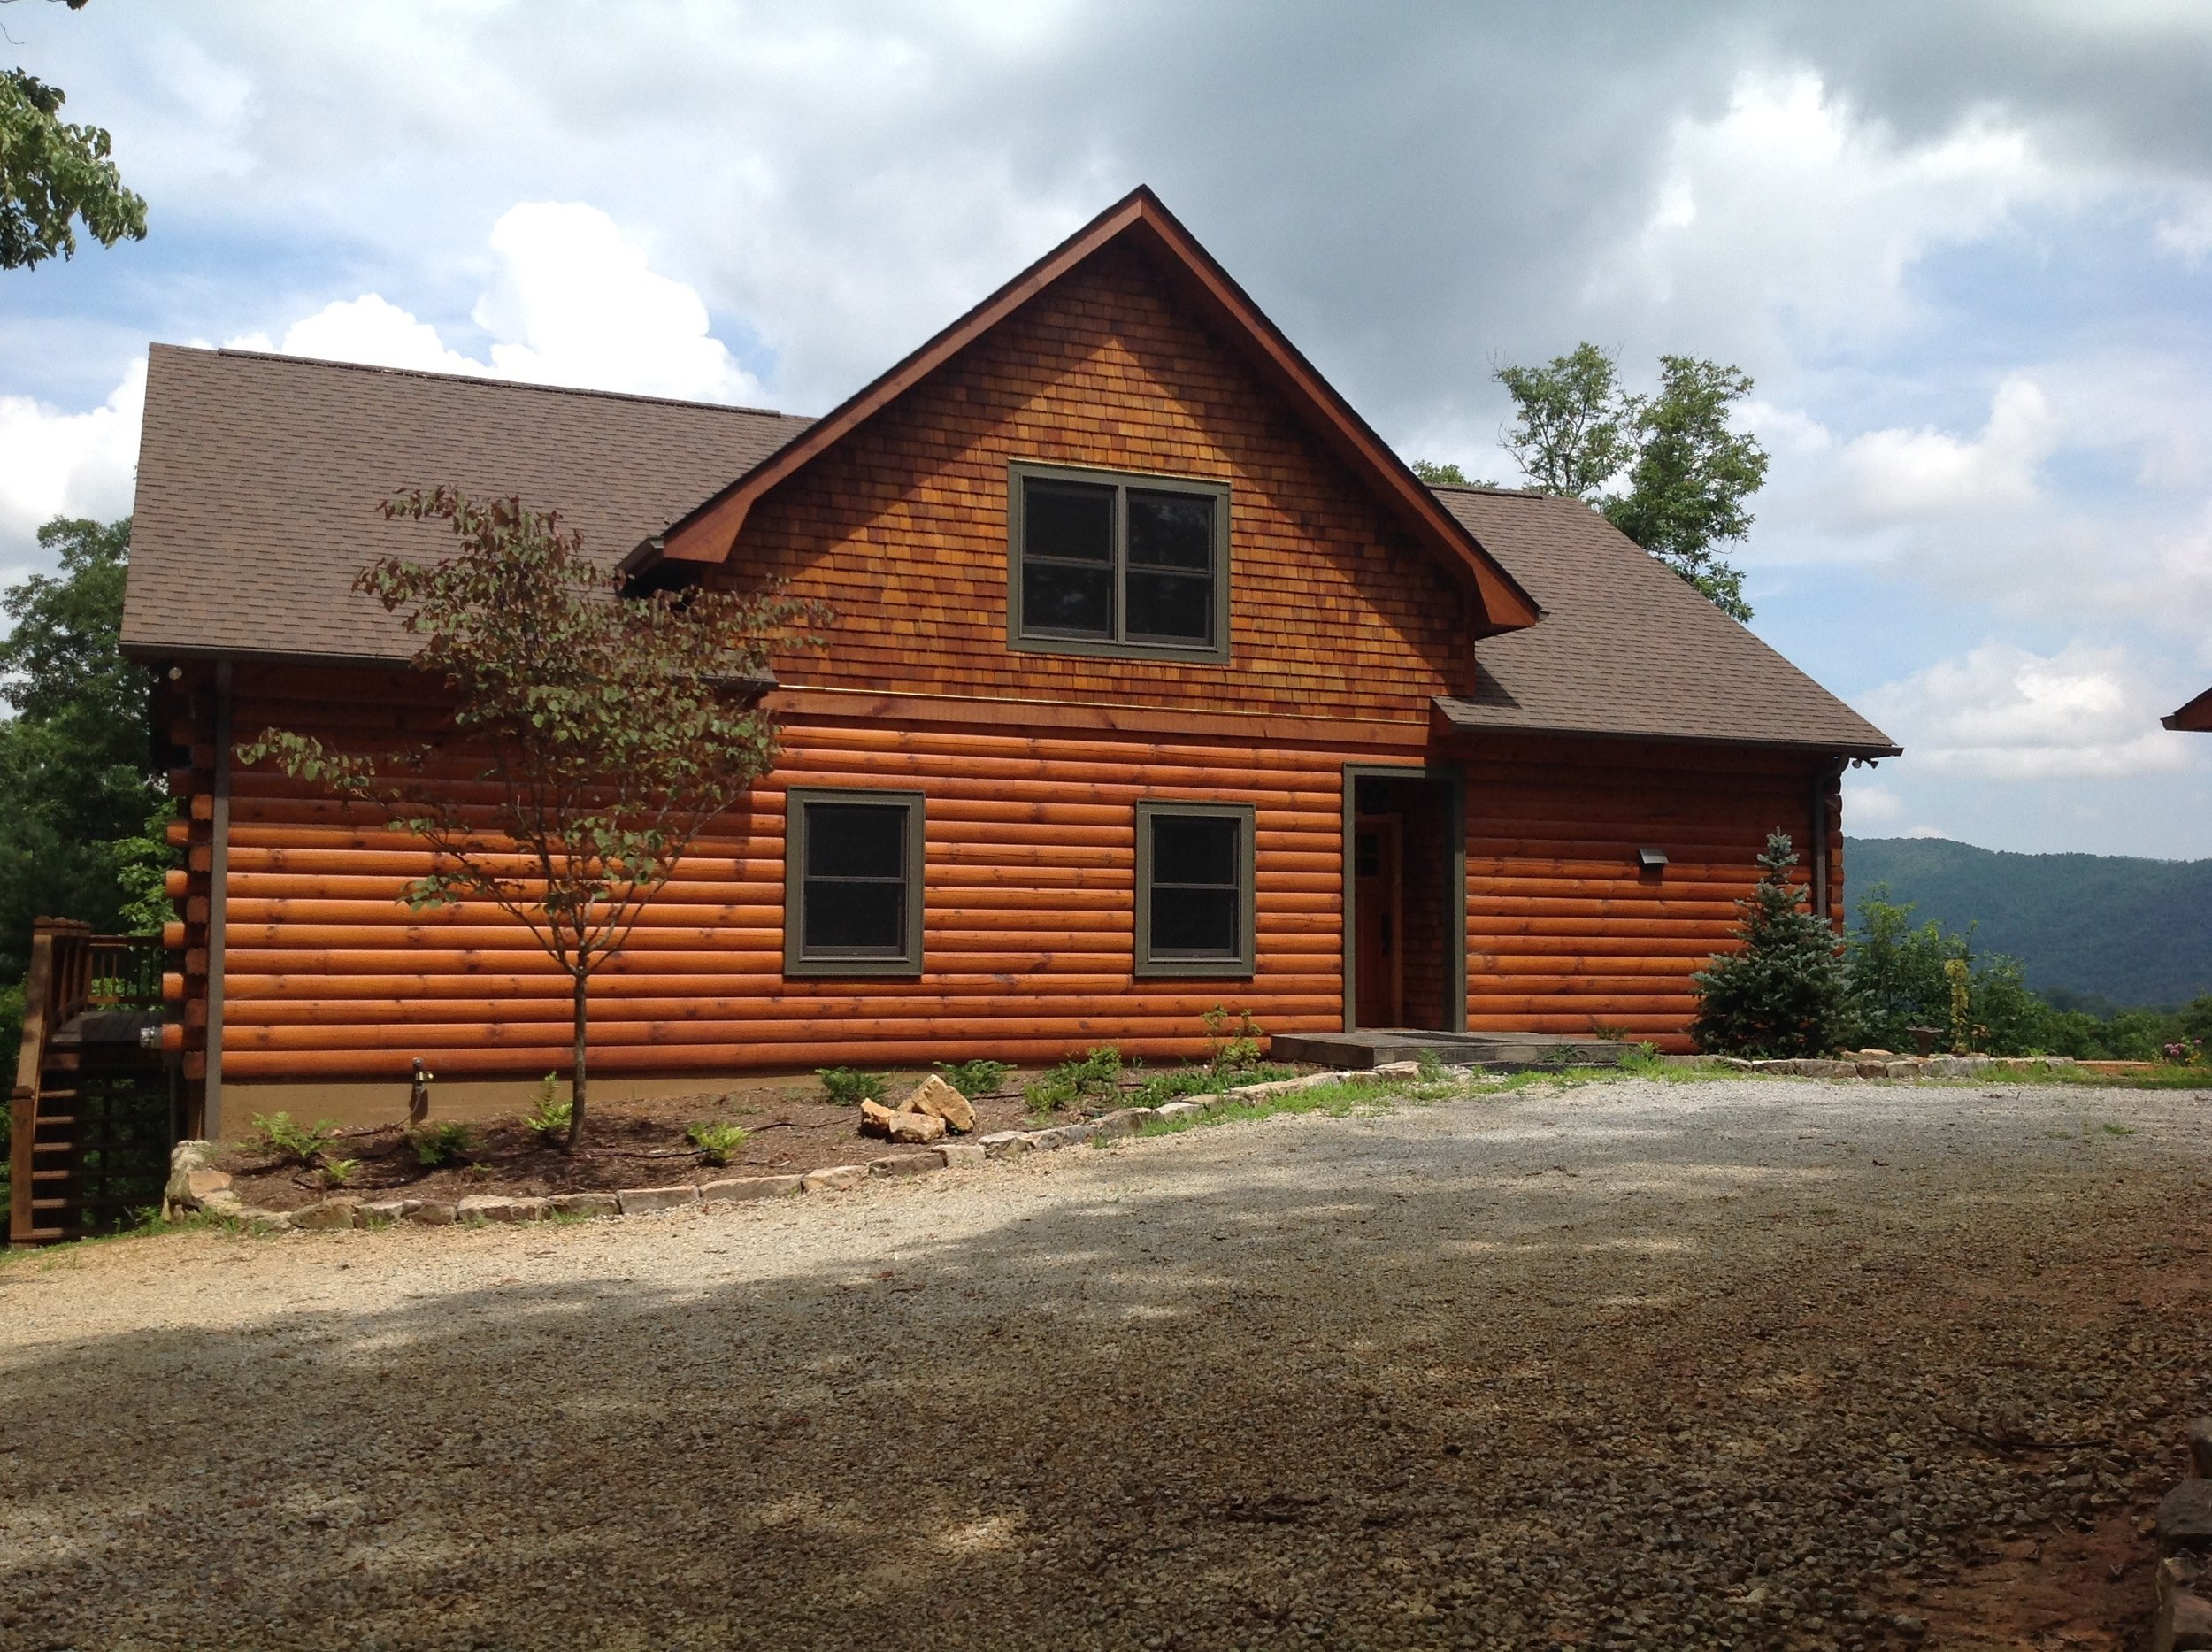 Persimmon D-Log Home & Separate Garage -